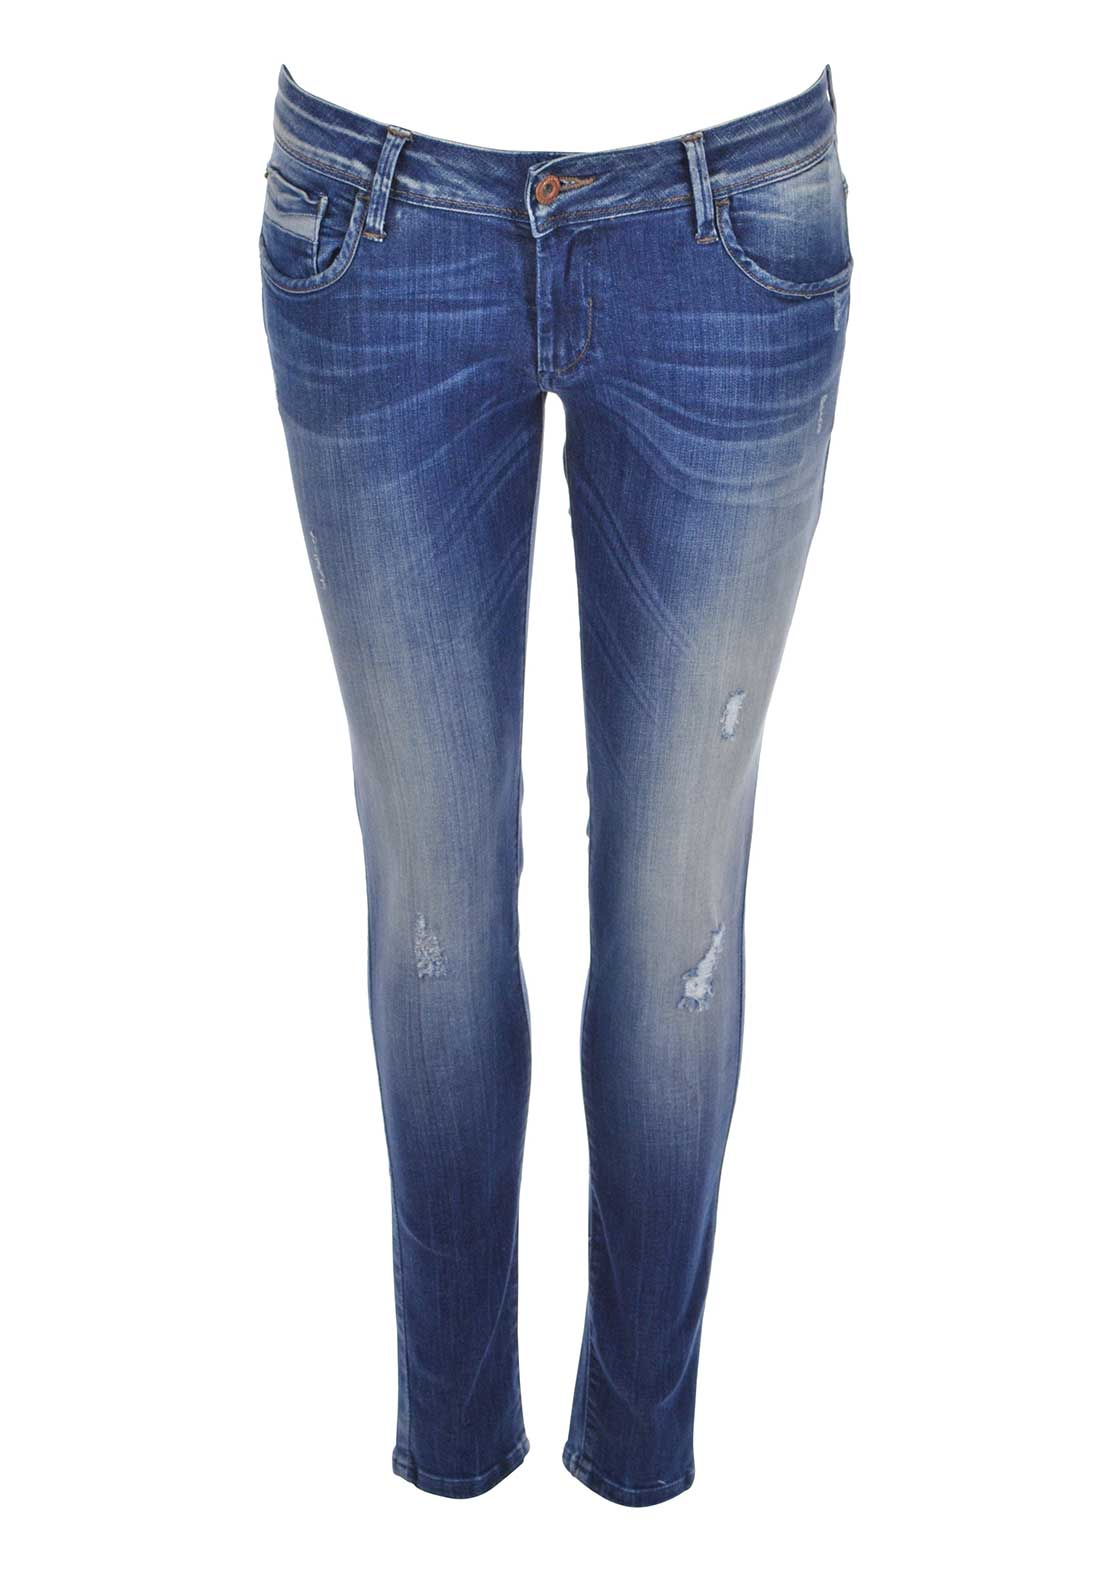 Tiffosi Kate Ripped Skinny Jeans, Blue Denim